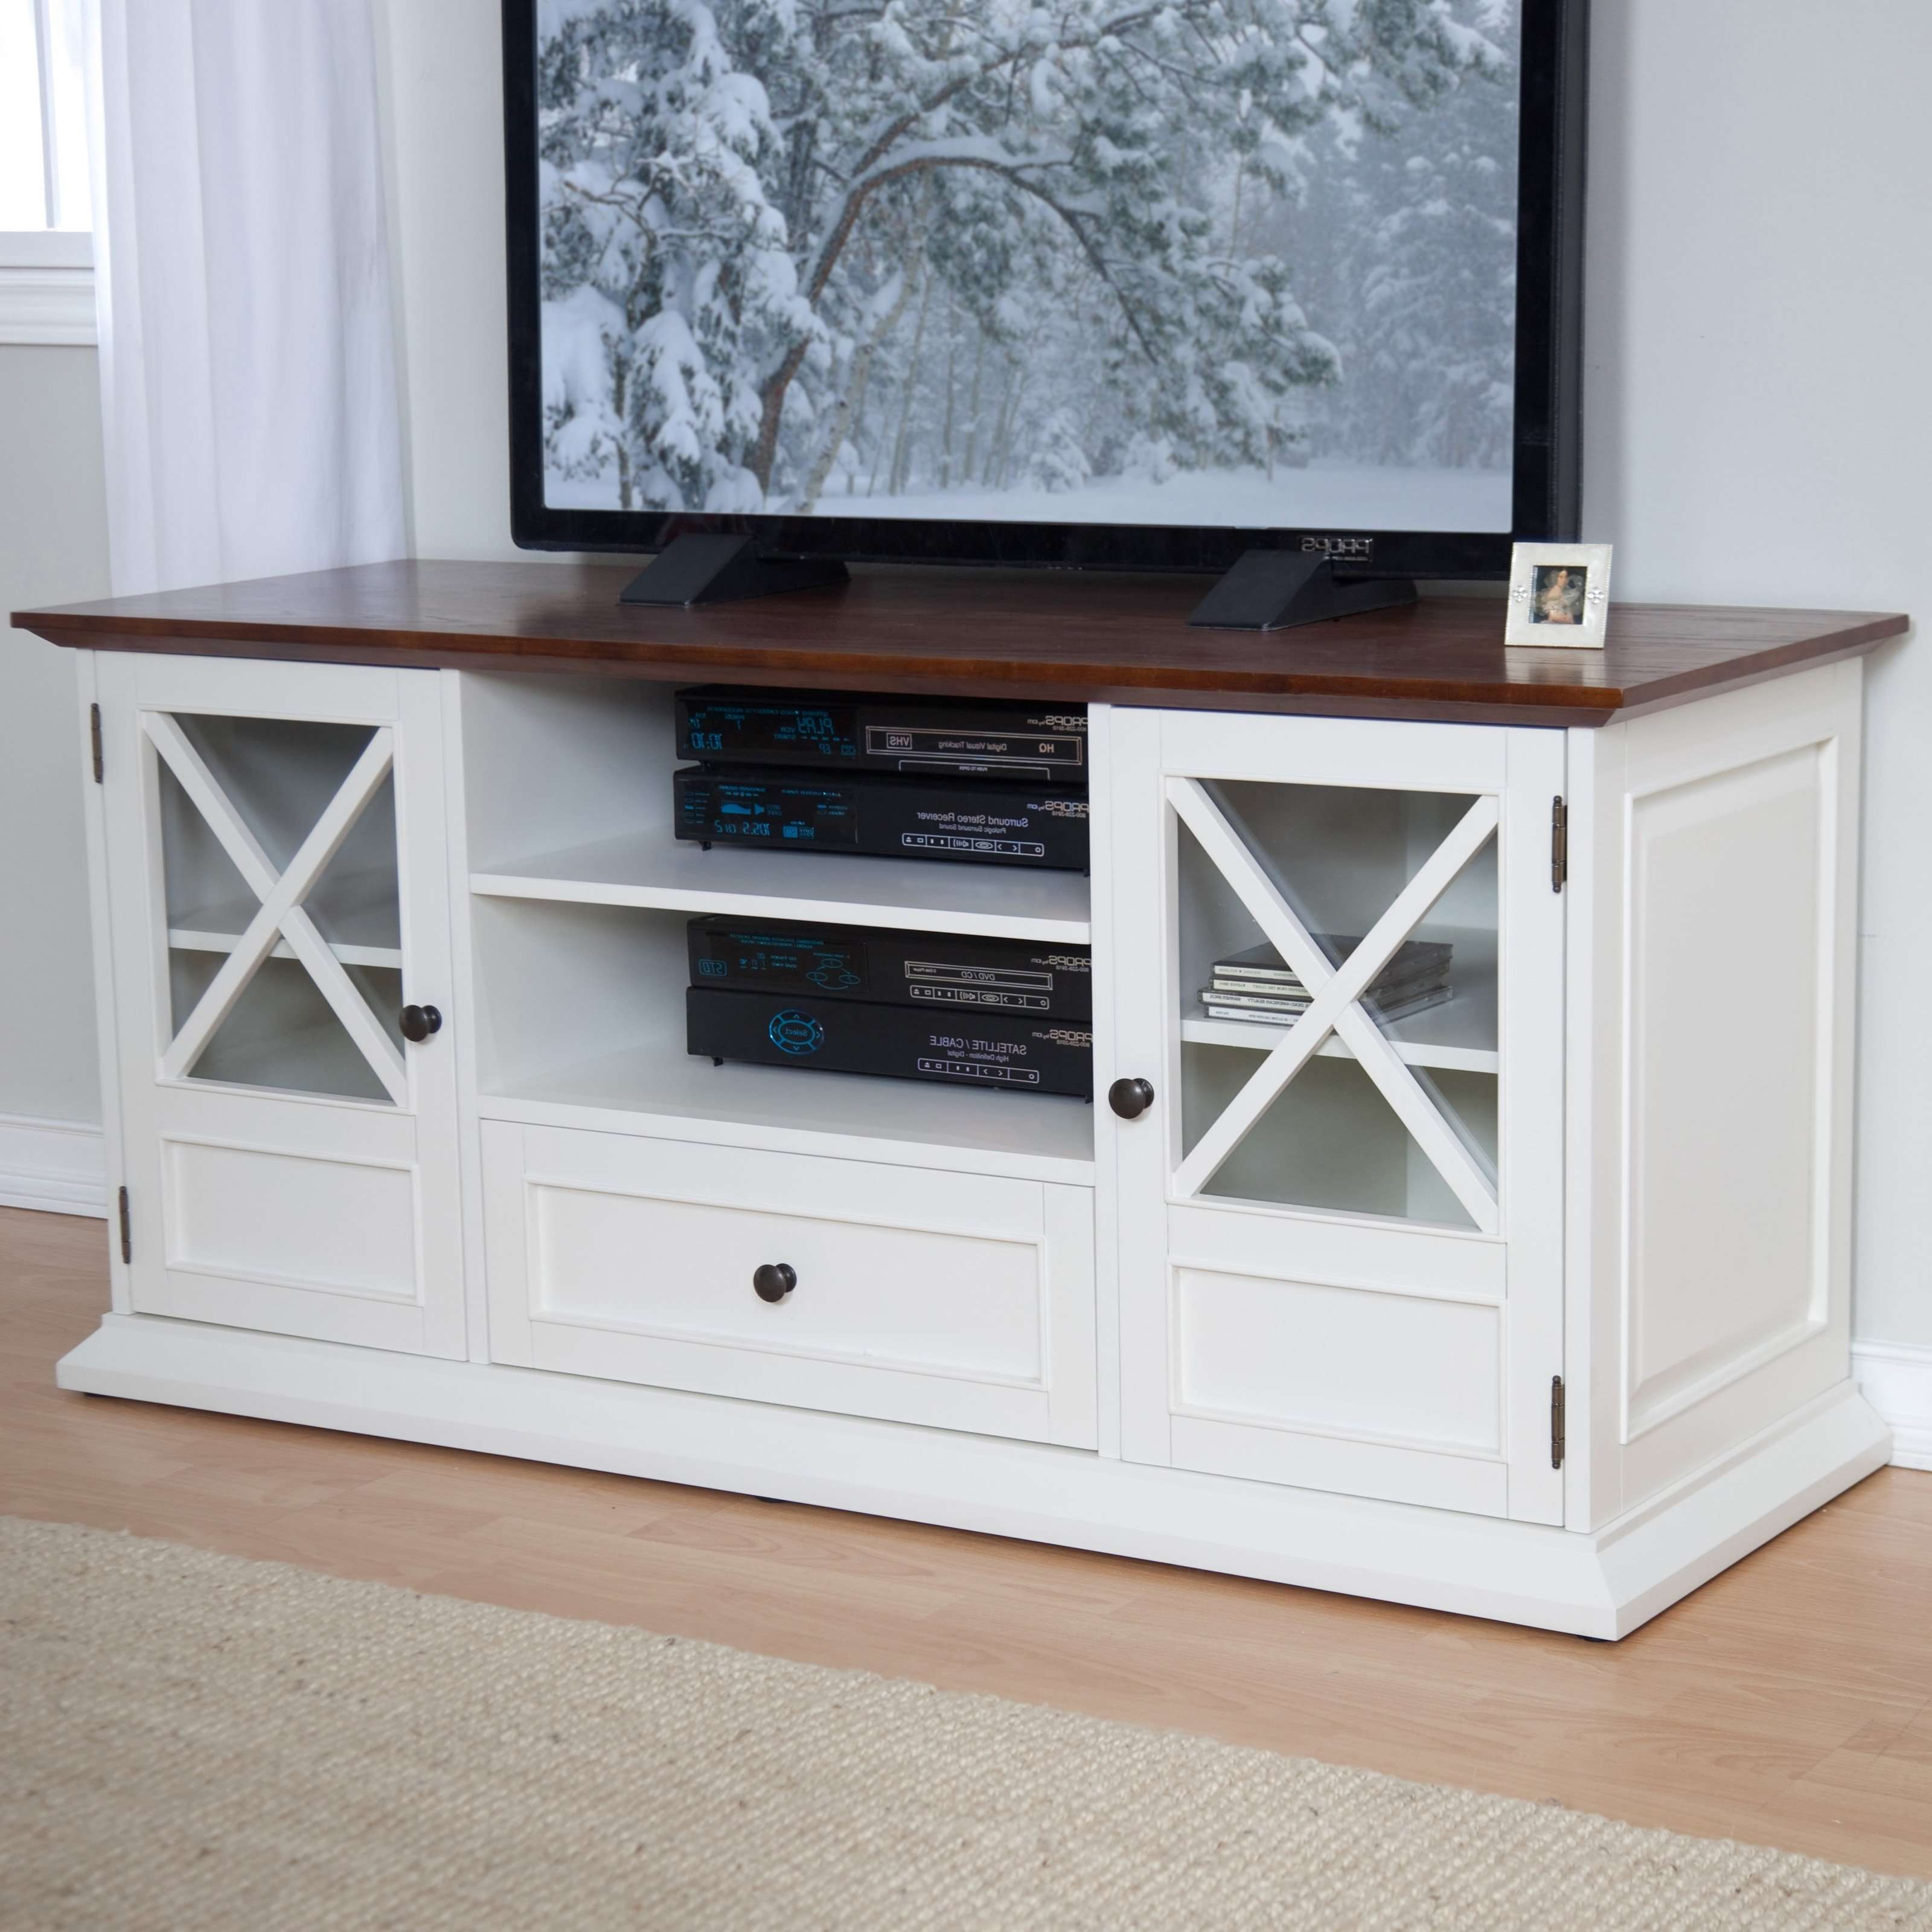 Belham Living Hampton Tv Stand – White/oak | Hayneedle For Tv Cabinets With Drawers (View 17 of 20)